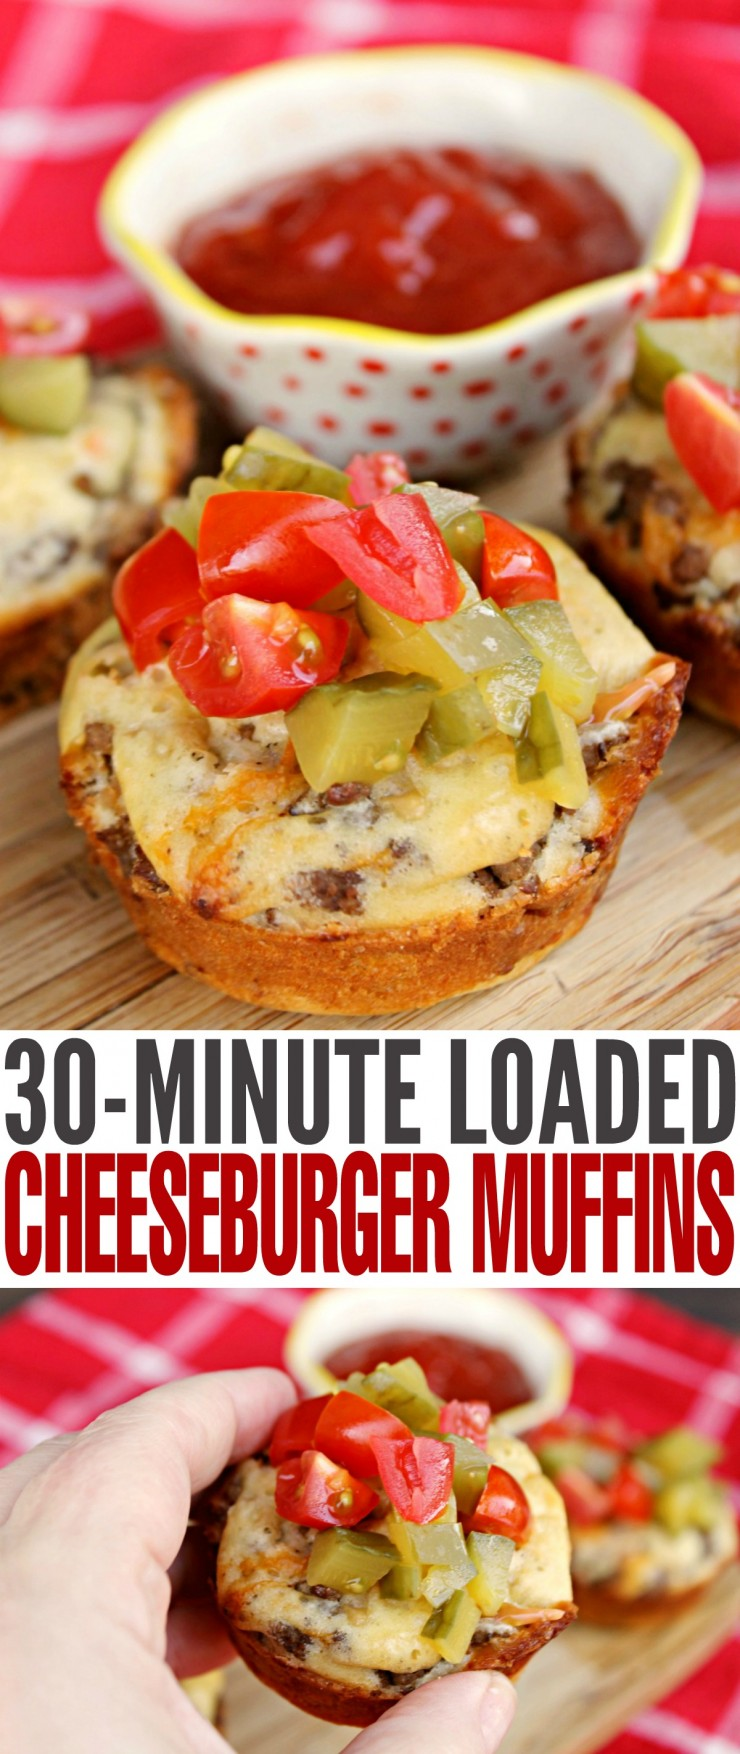 These Loaded Cheeseburger Muffins are ready in just 30 minutes for a fun filled lunch, dinner or even as a summer appetizer. All the flavour of a hamburger in one easy to eat muffin.